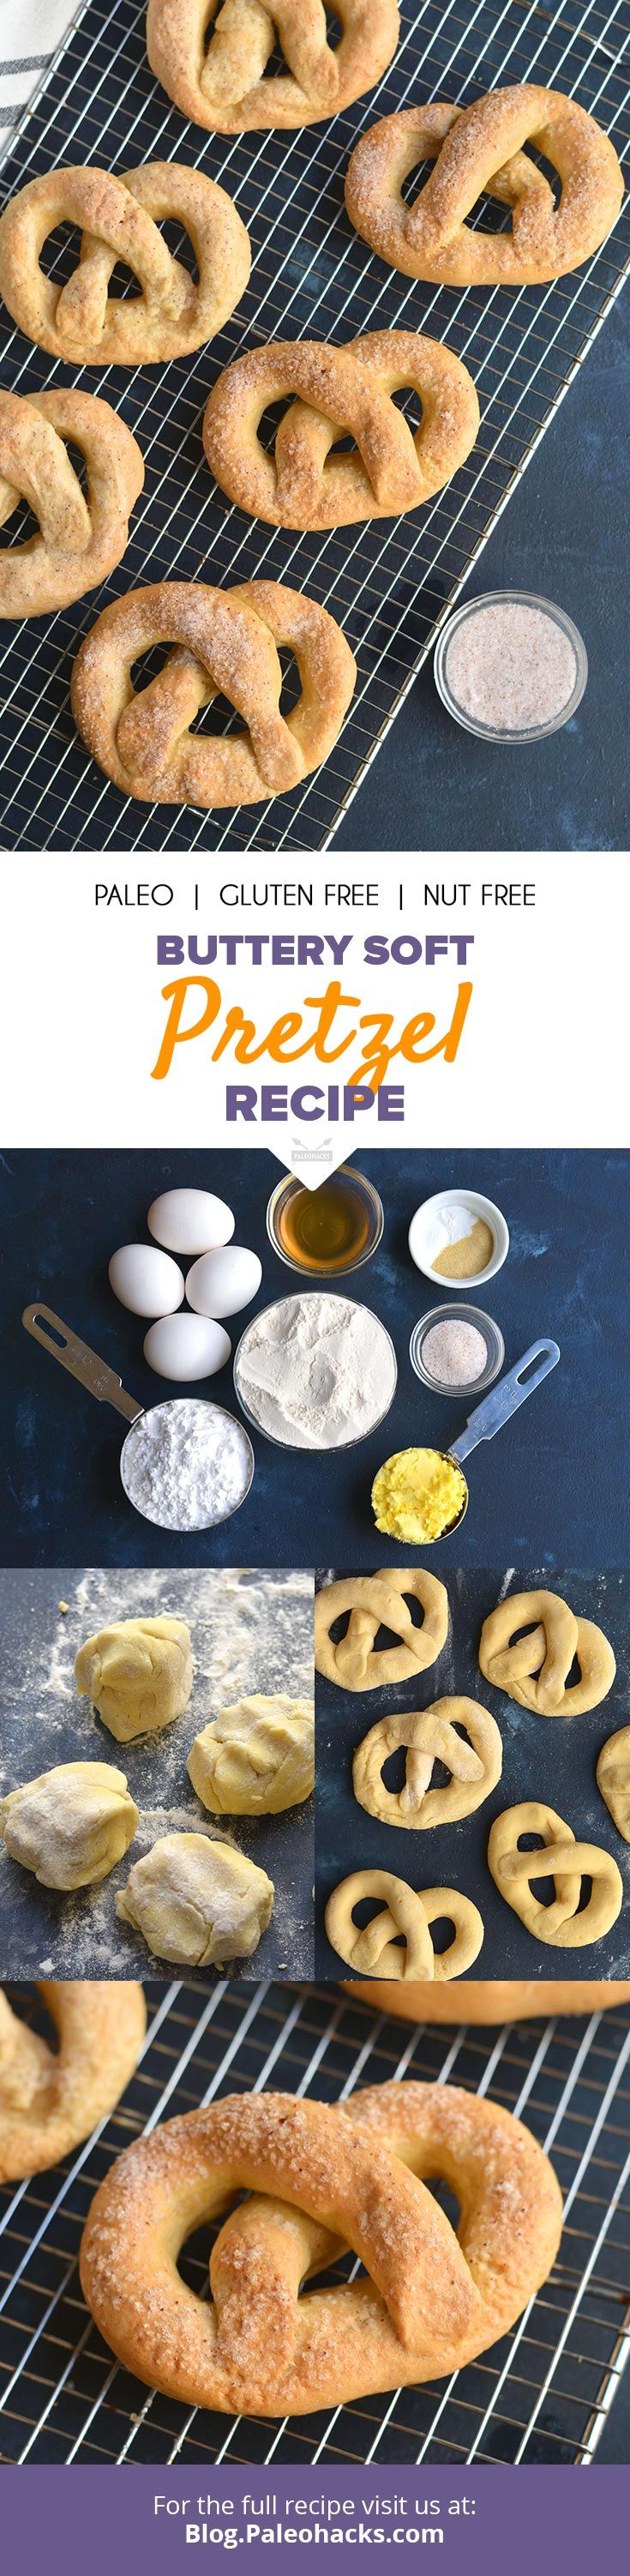 These classic snacks are boiled and then baked for a grain-free  pretzel that's slightly crunchy on the outside and perfectly soft on the  inside. Get the full recipe here: http://paleo.co/softpretzelrcp